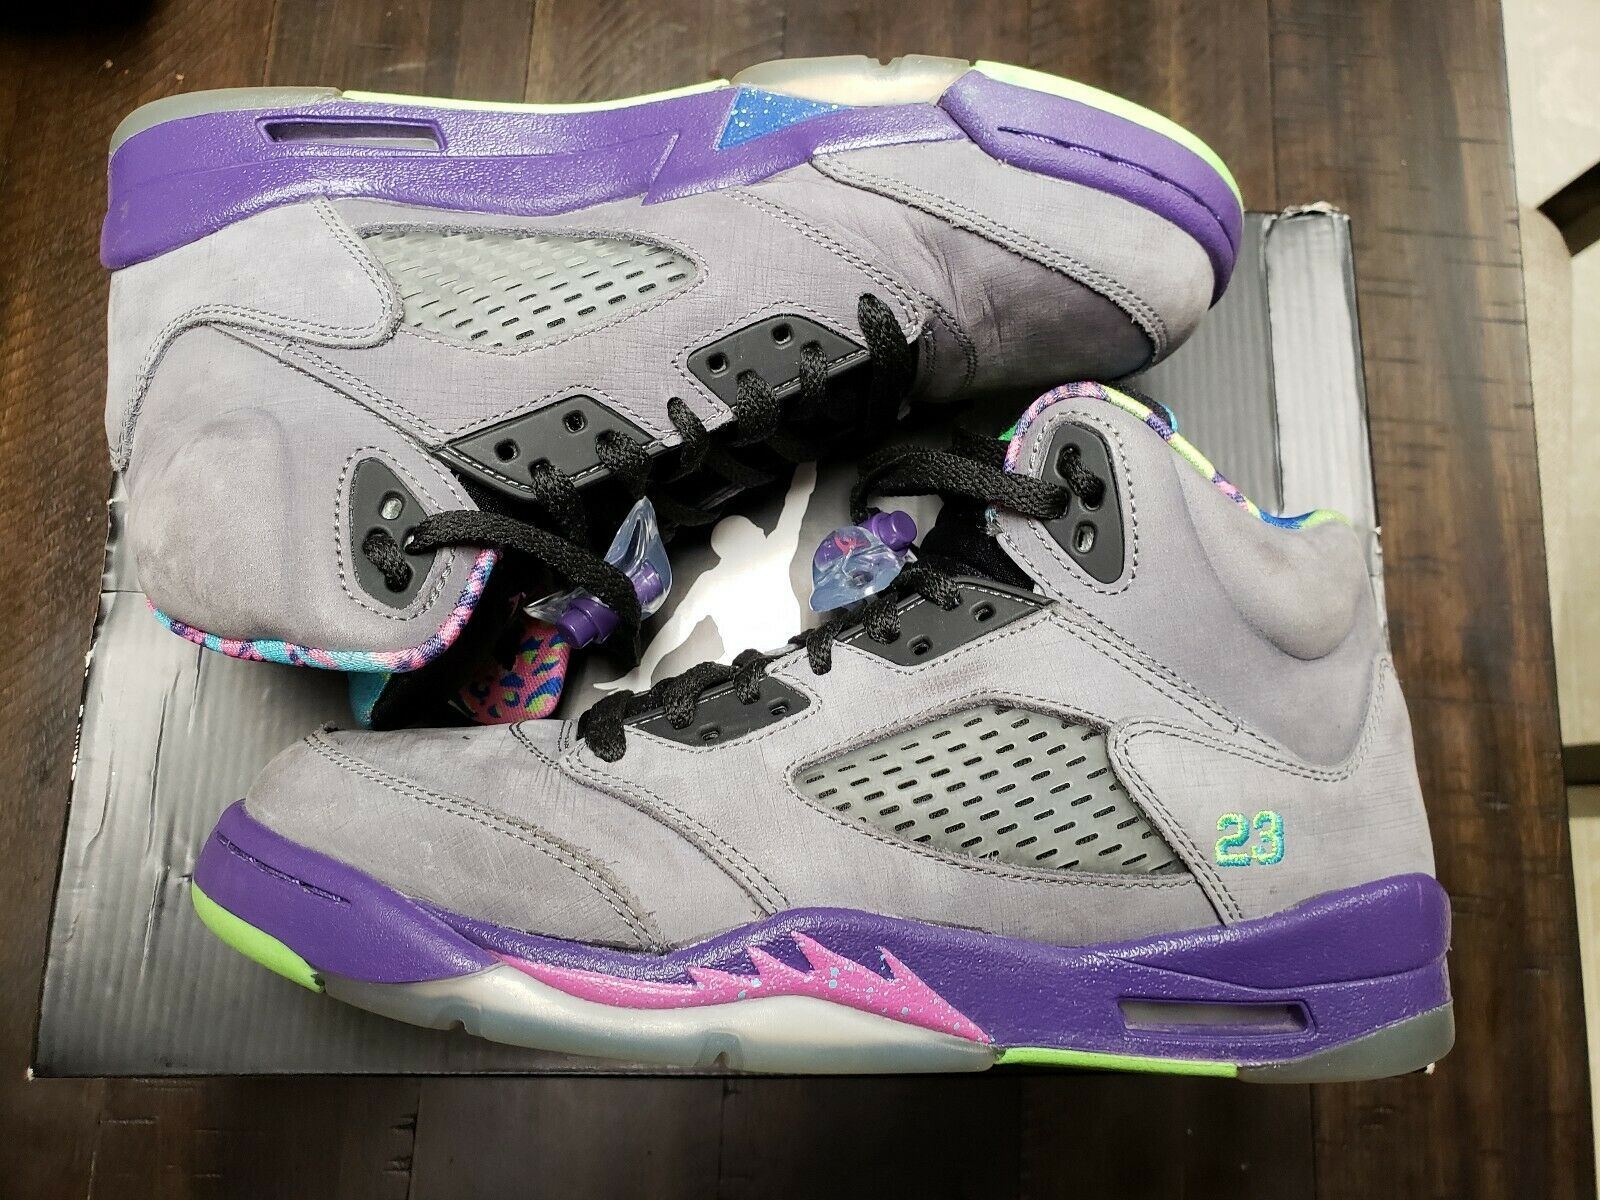 Air Jordan Retro 5 Bel Air Size 7y OG BoX